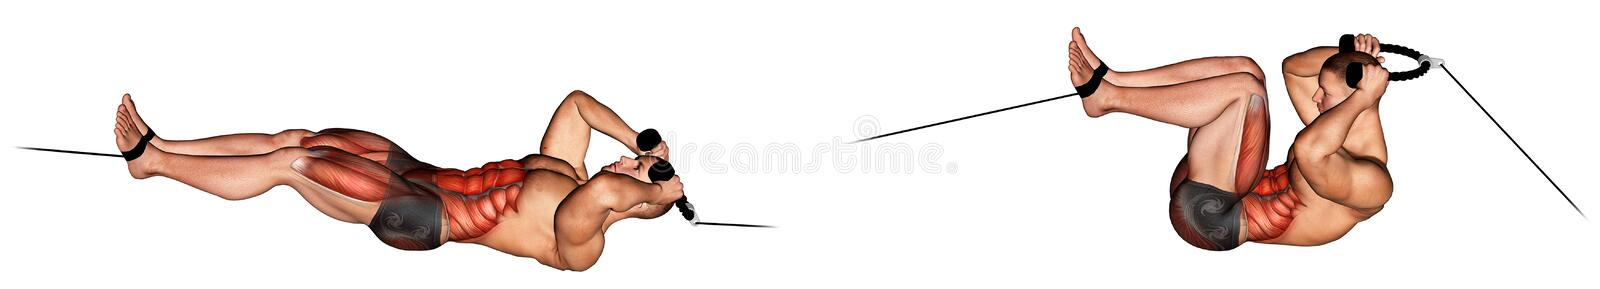 Exercising. Cable Tuck Reverse Crunch stock photos